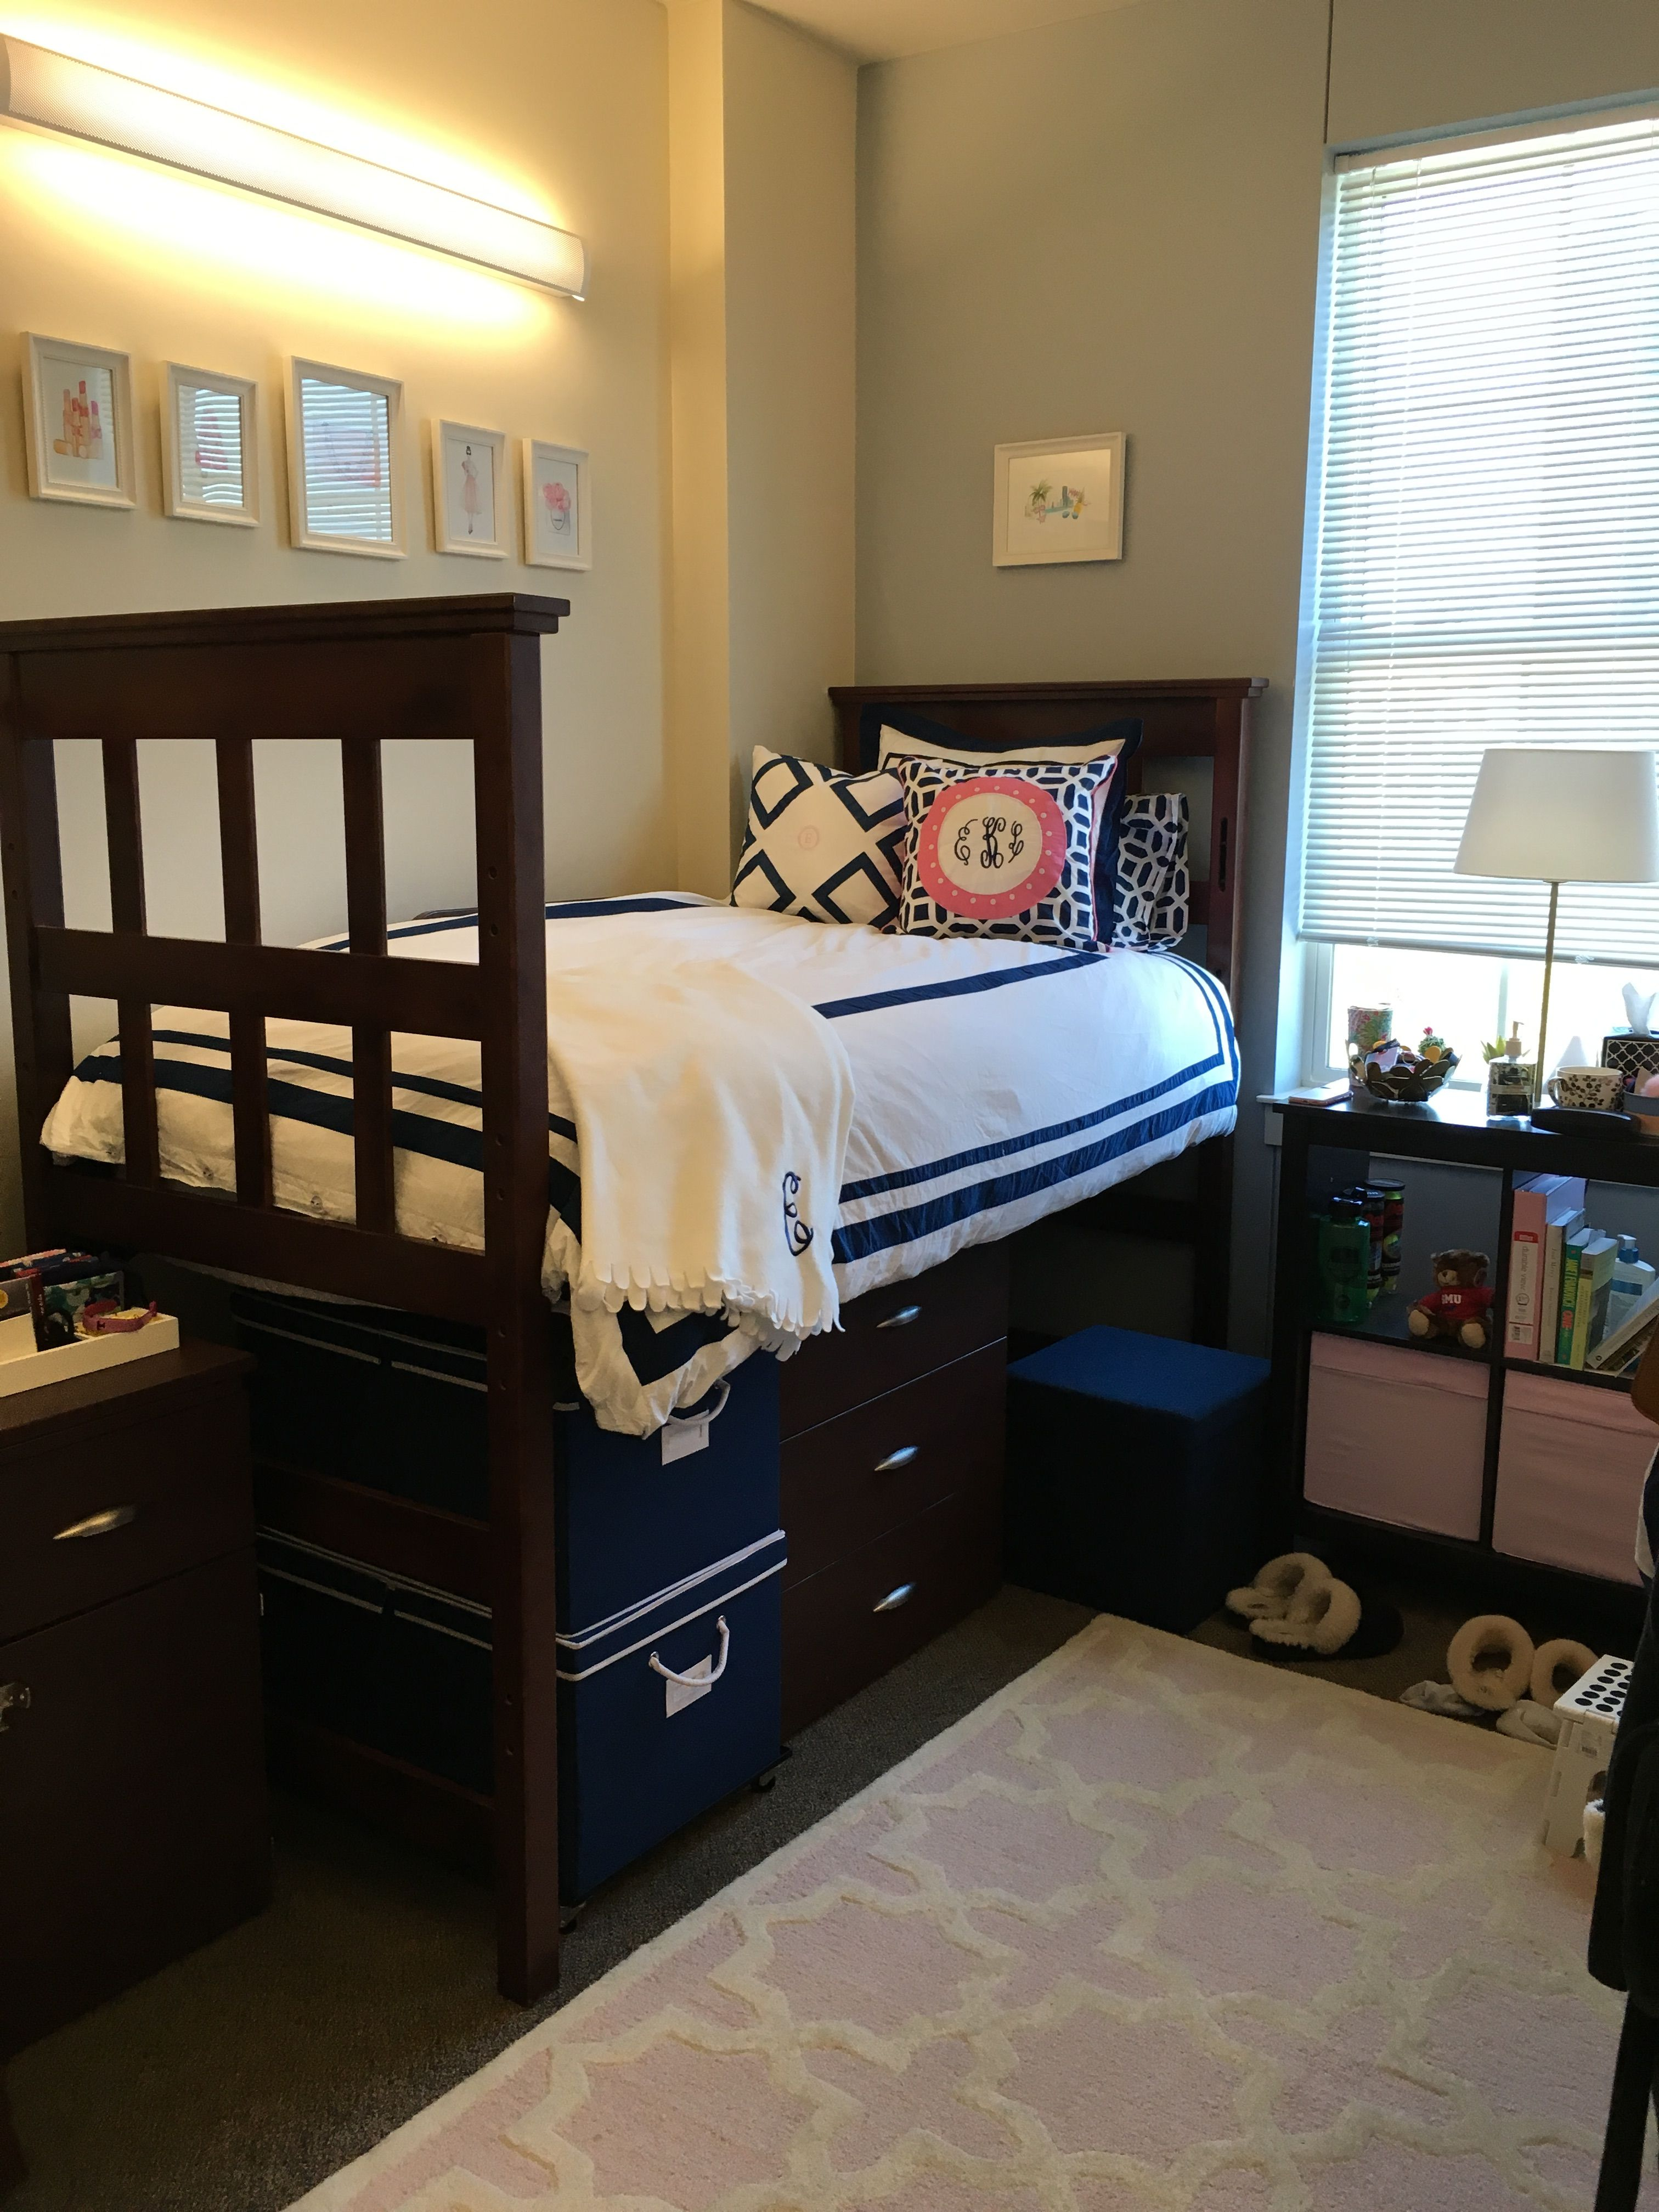 One Of The Best Tips For Creating And Organizing Your Dorm Room Is To  Safely Raise The Bed With A Set Of Strong Bed Risers, Purchase A Smart  Under Bed ... Part 97